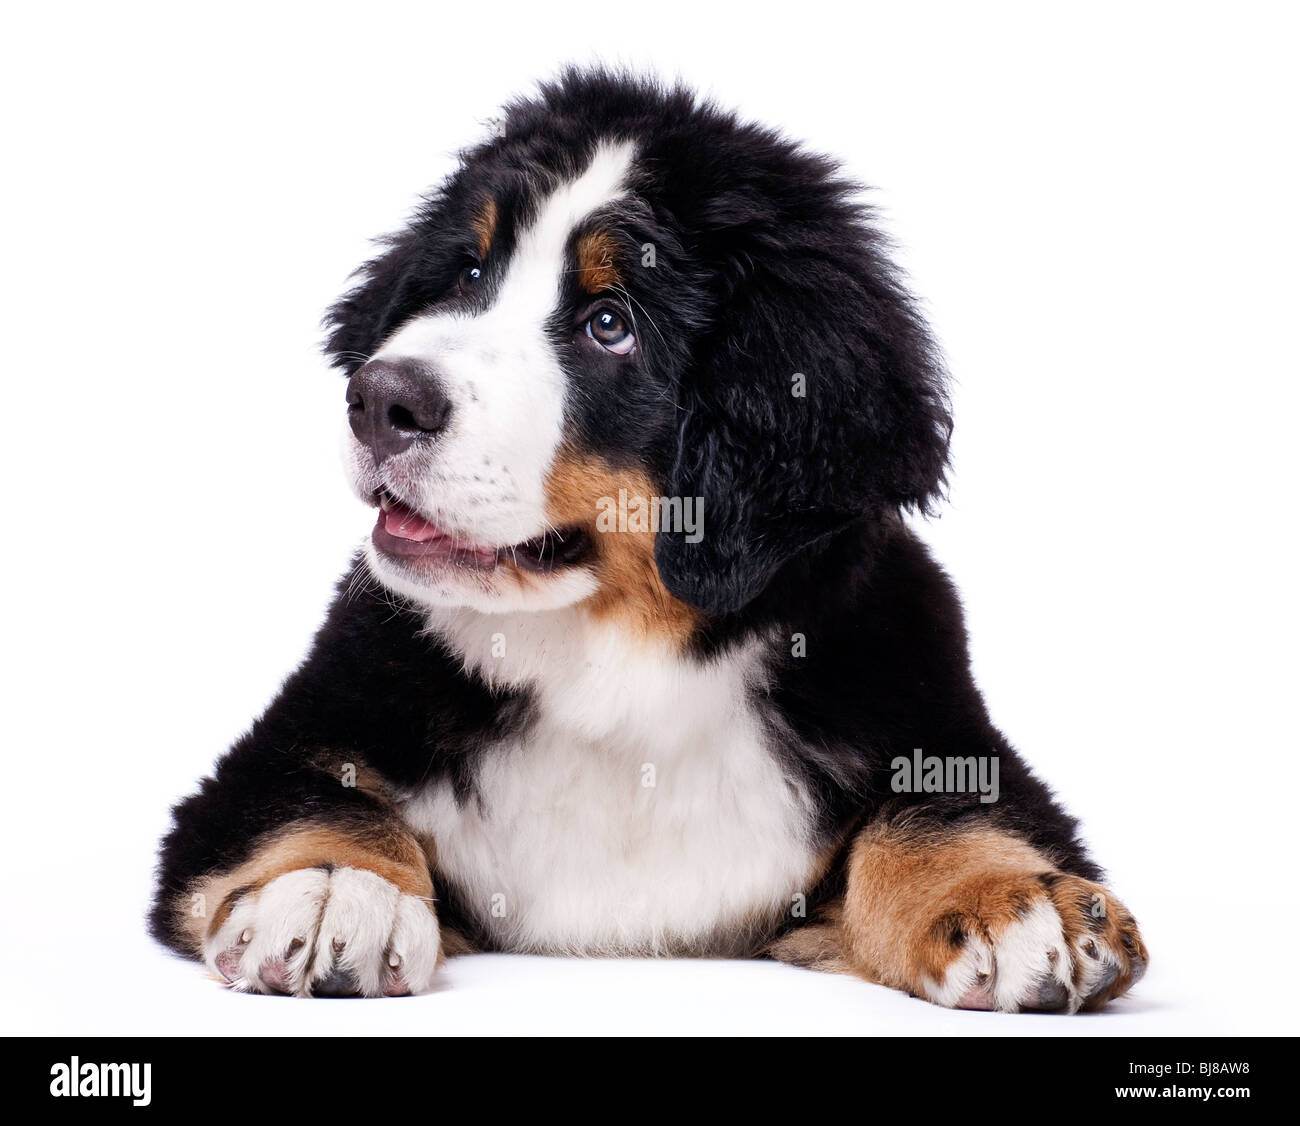 Young Bouvier Bernois or Berner Sennen, portraied on white background, chewing on a toy - Stock Image